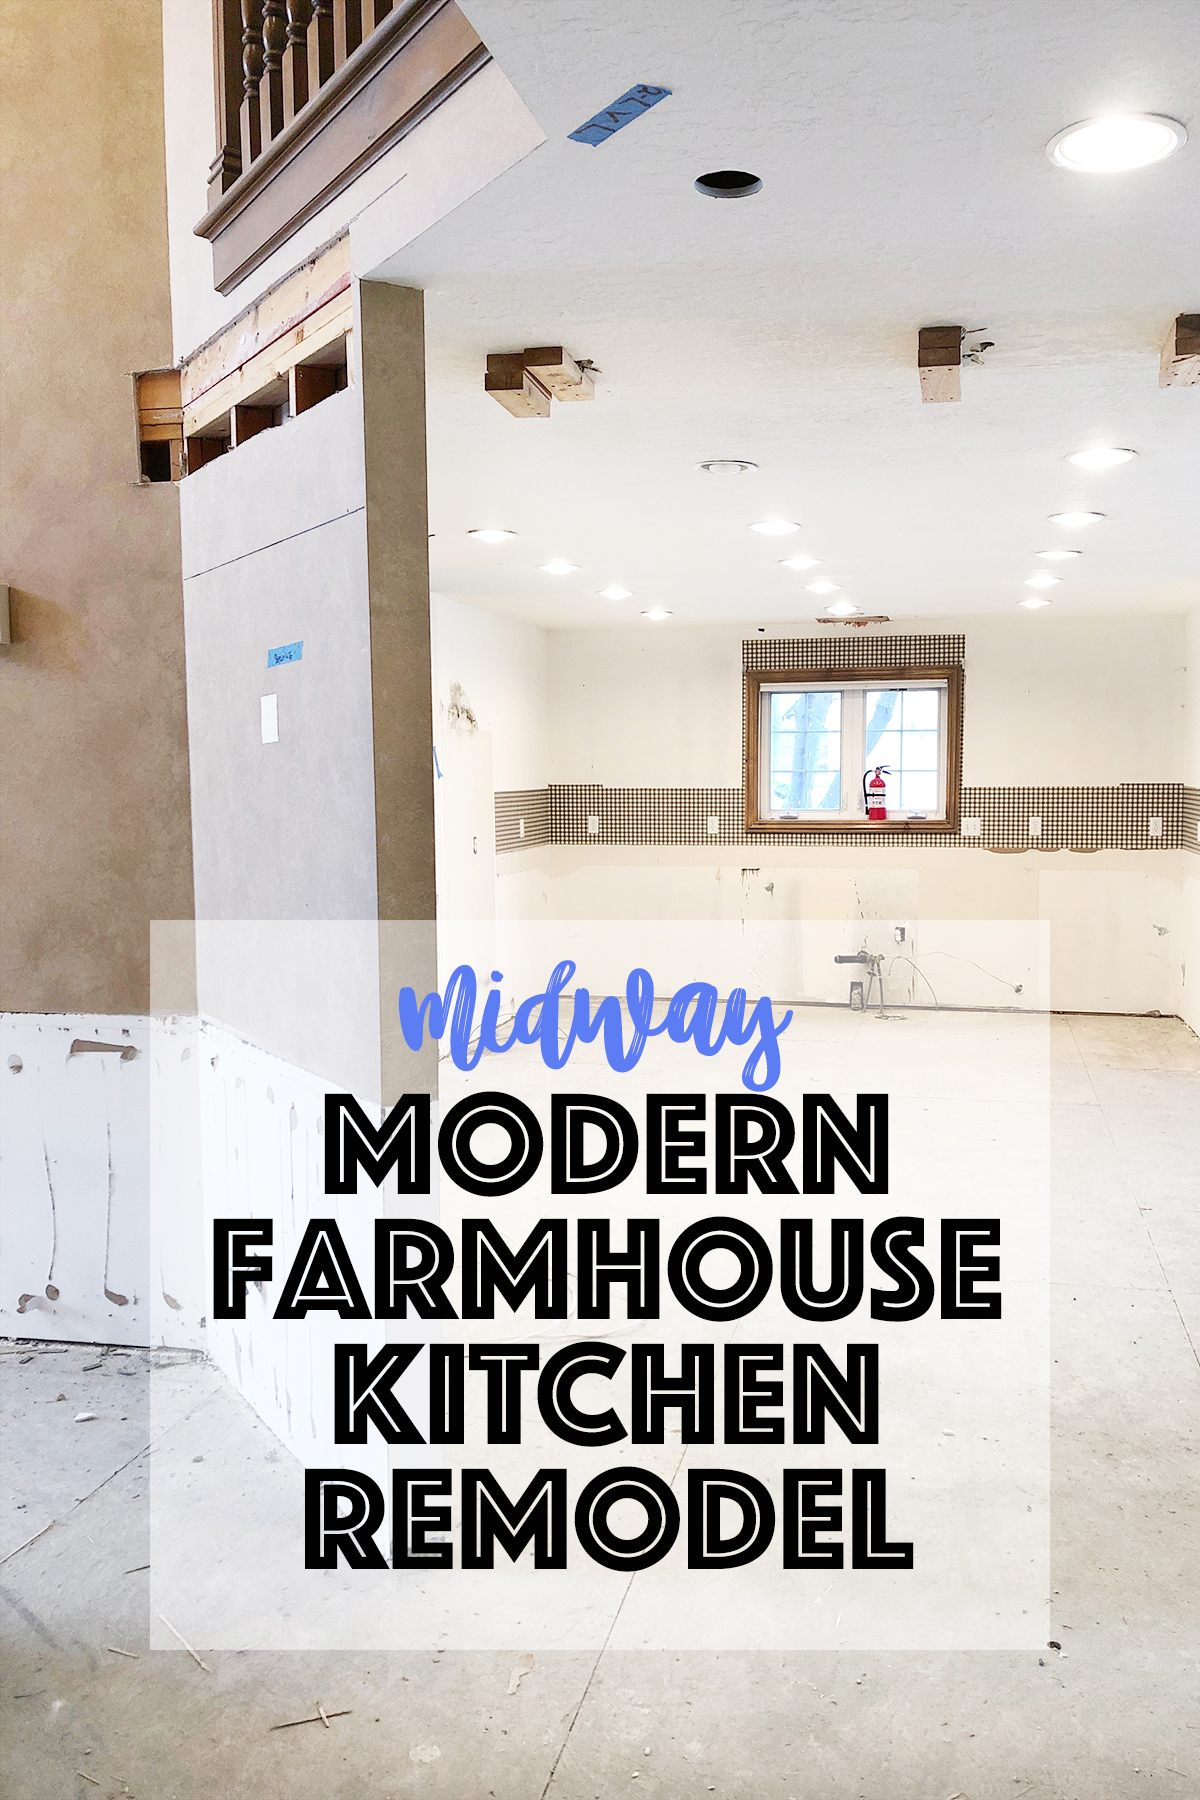 Kitchen Remodel Before and After Wall Removal: Midway Modern Farmhouse